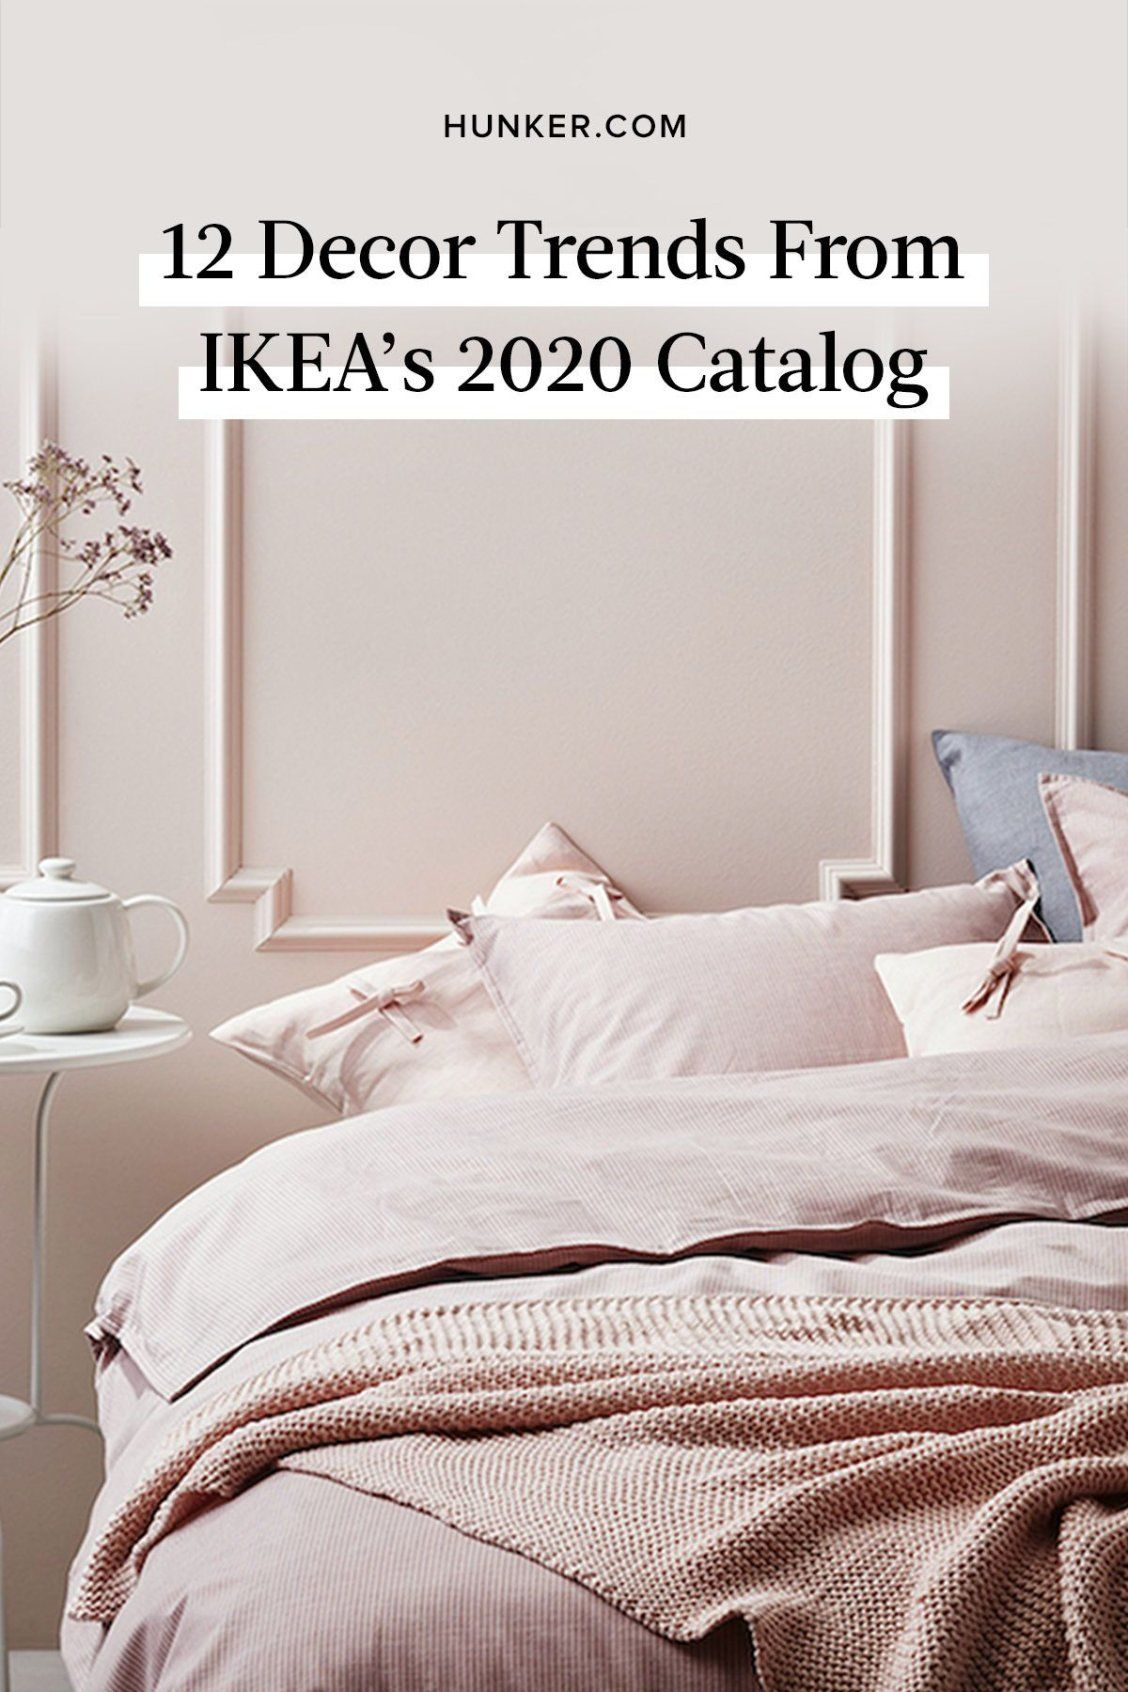 12 Decor Trends From IKEA's 2020 Catalog to Bookmark Now